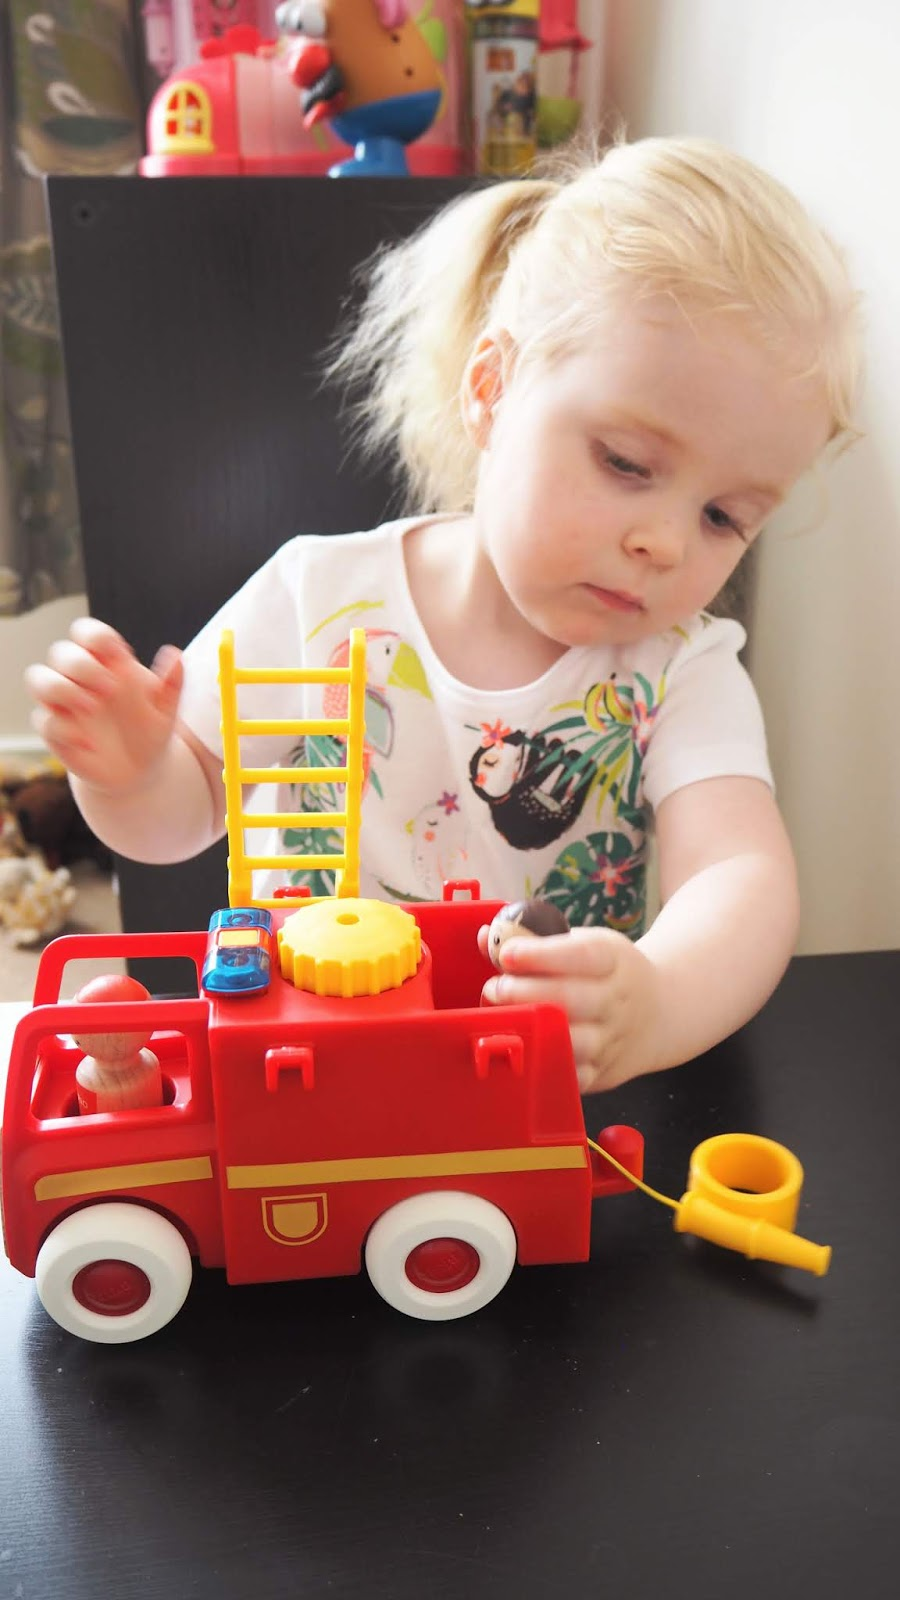 The fire truck is in the foreground with Elise in the background. She is lifting a little wooden person onto the back of the fire truck toy.